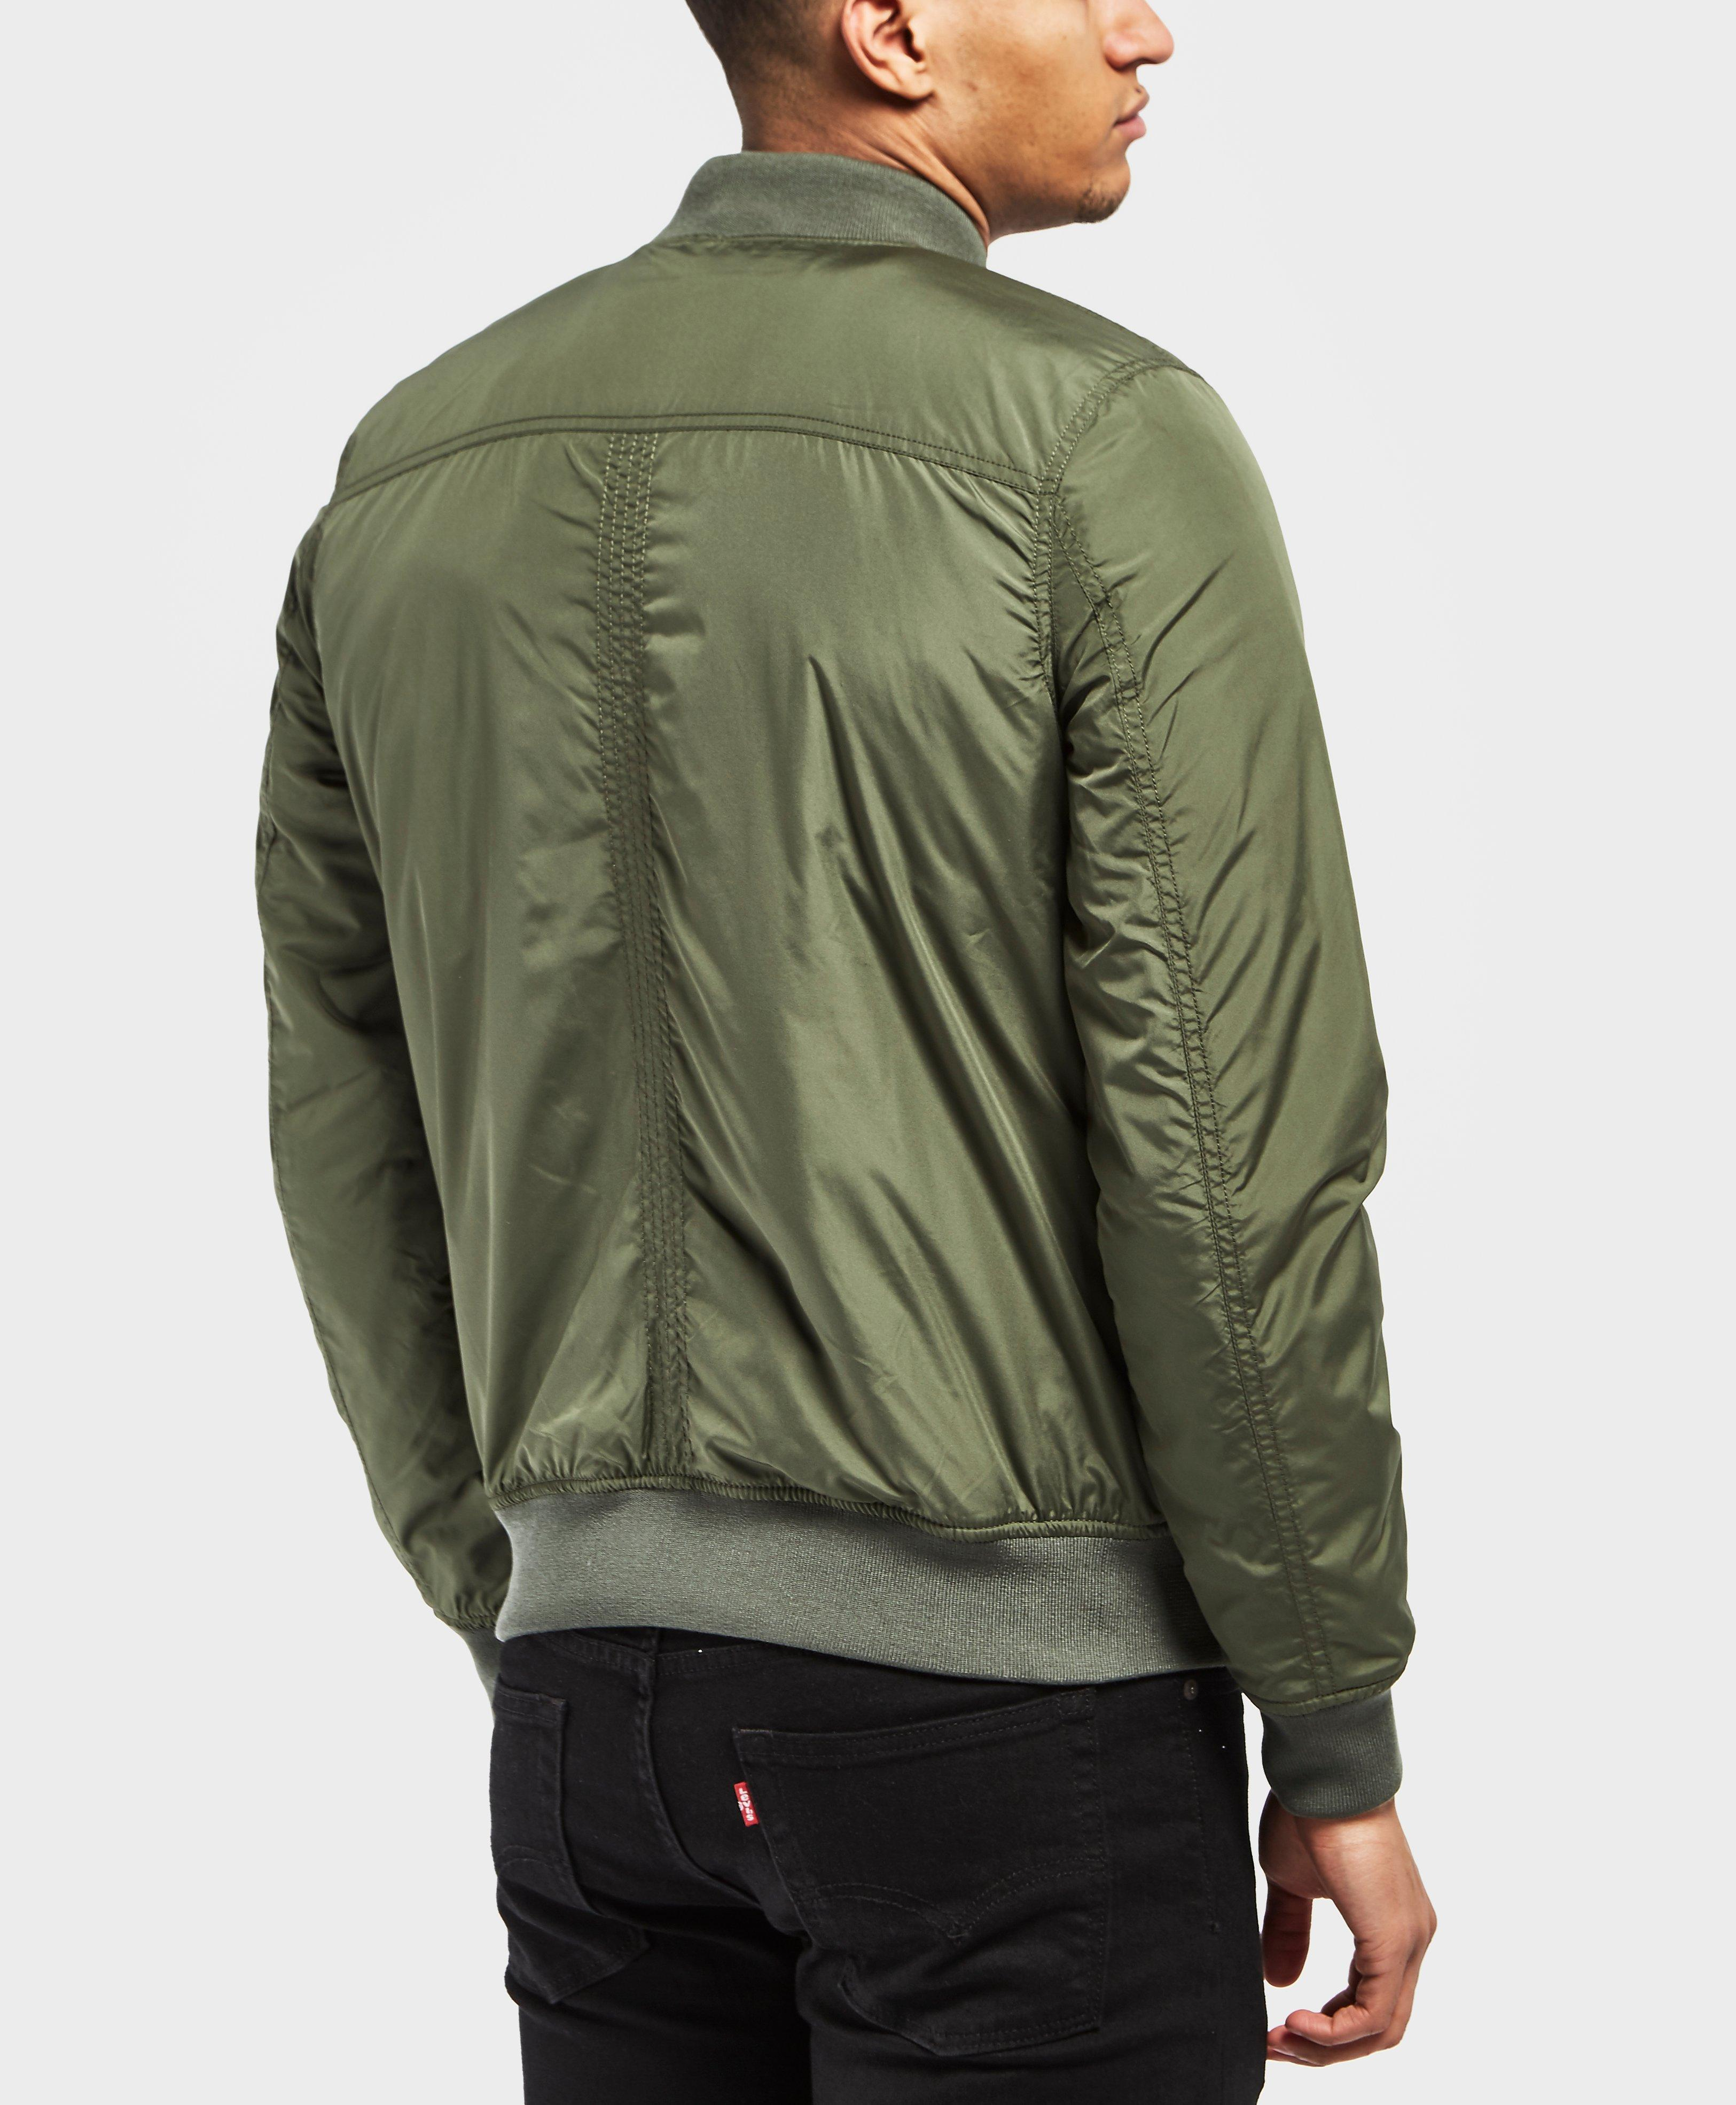 Tommy Hilfiger Padded Bomber Jacket in Green for Men - Lyst